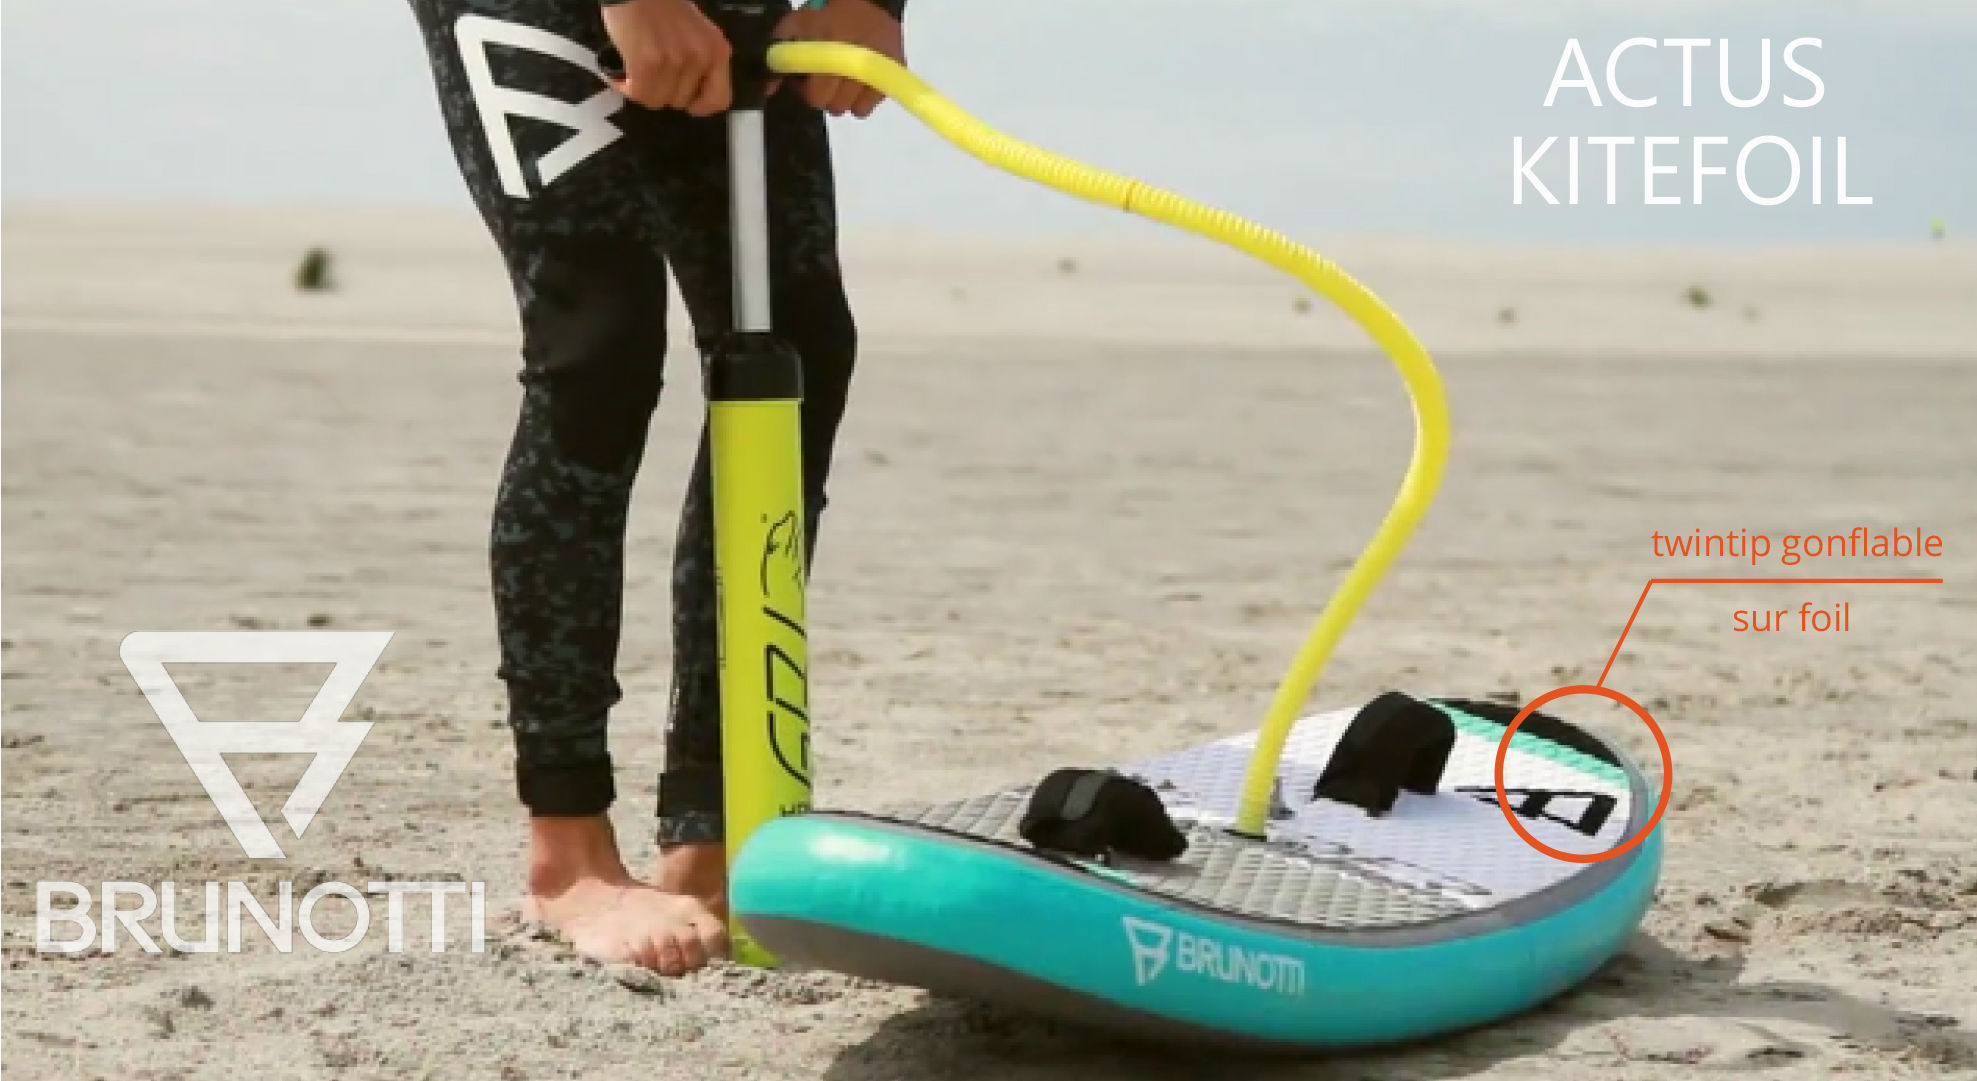 Kitefoil twintip gonflable